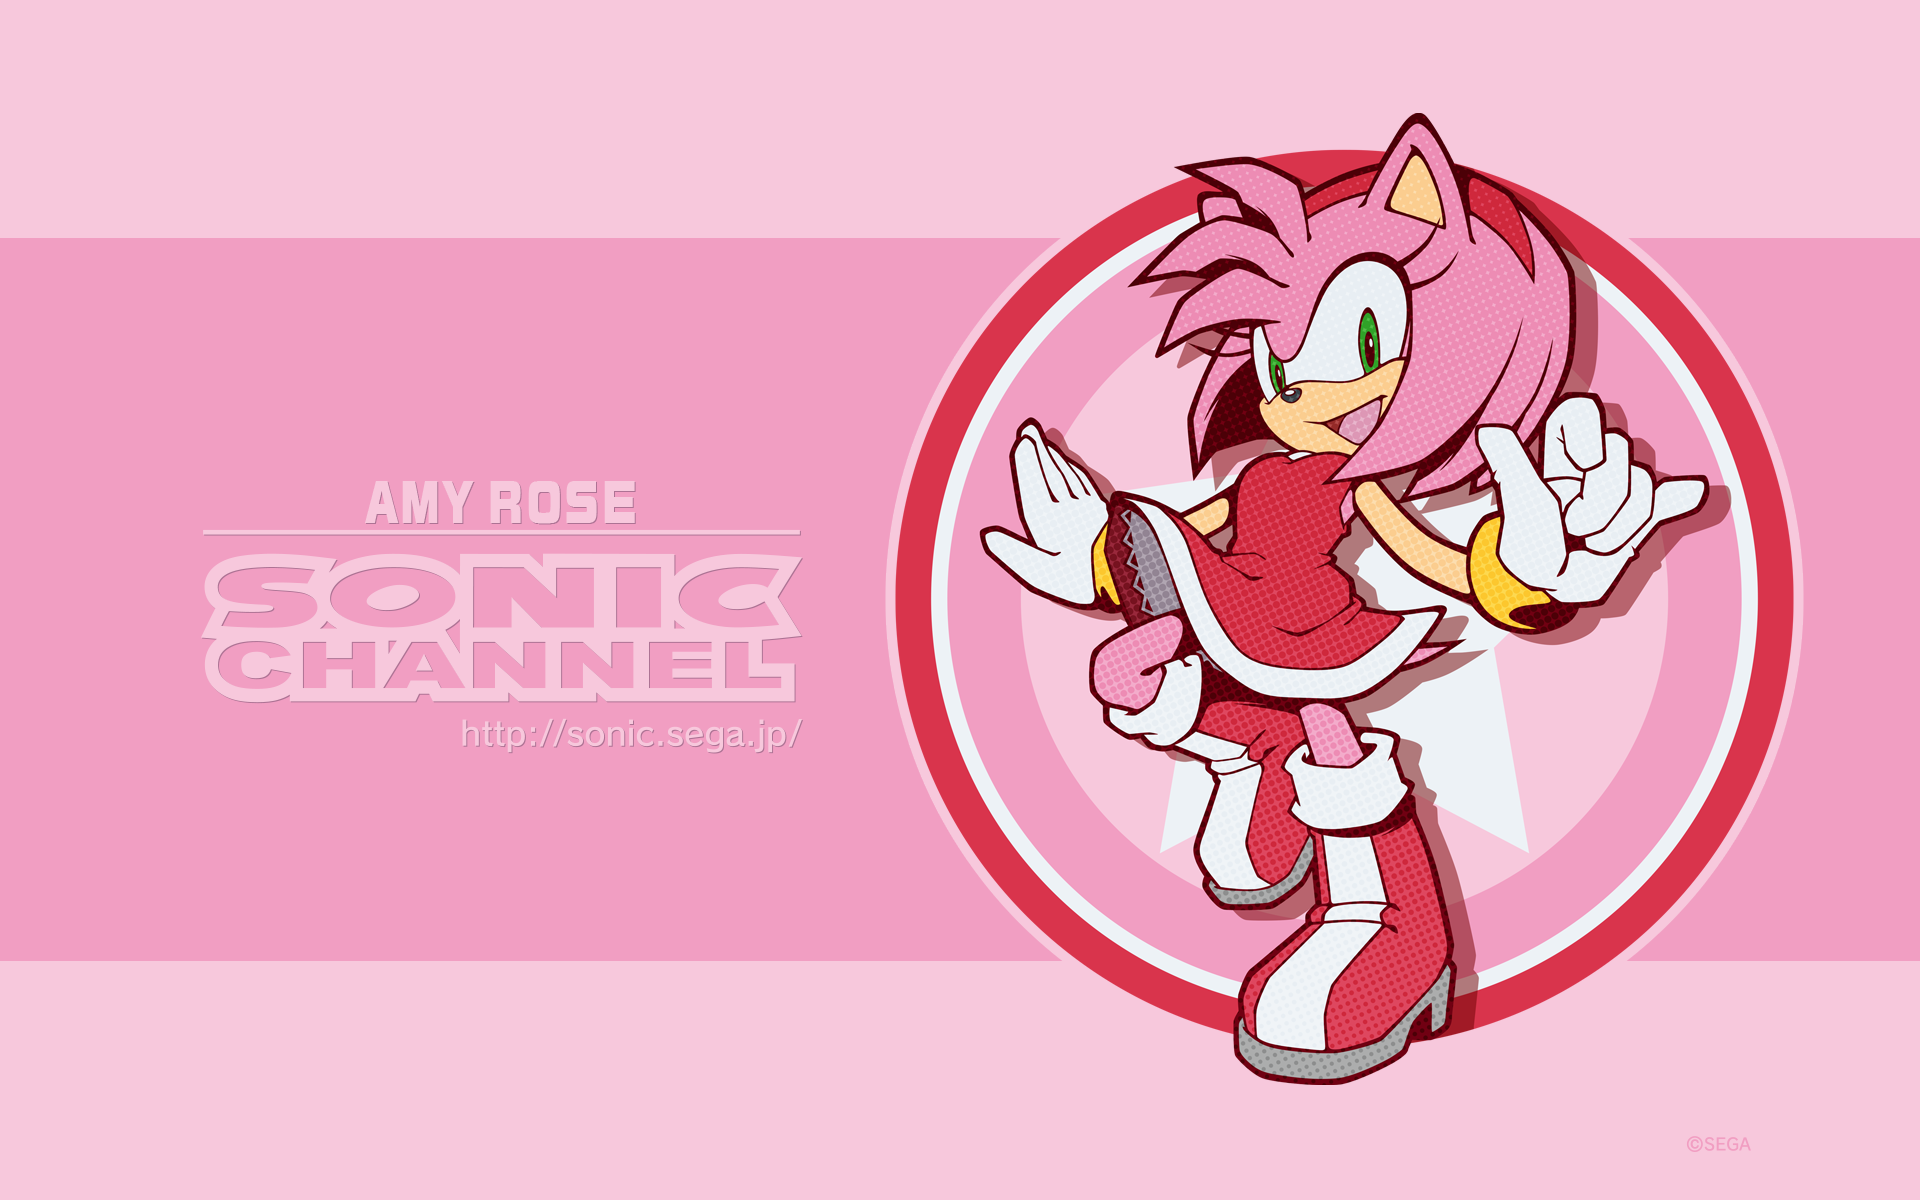 http://sonic.sega.jp/SonicChannel/enjoy/image/wallpaper_158_amy_13_pc.png